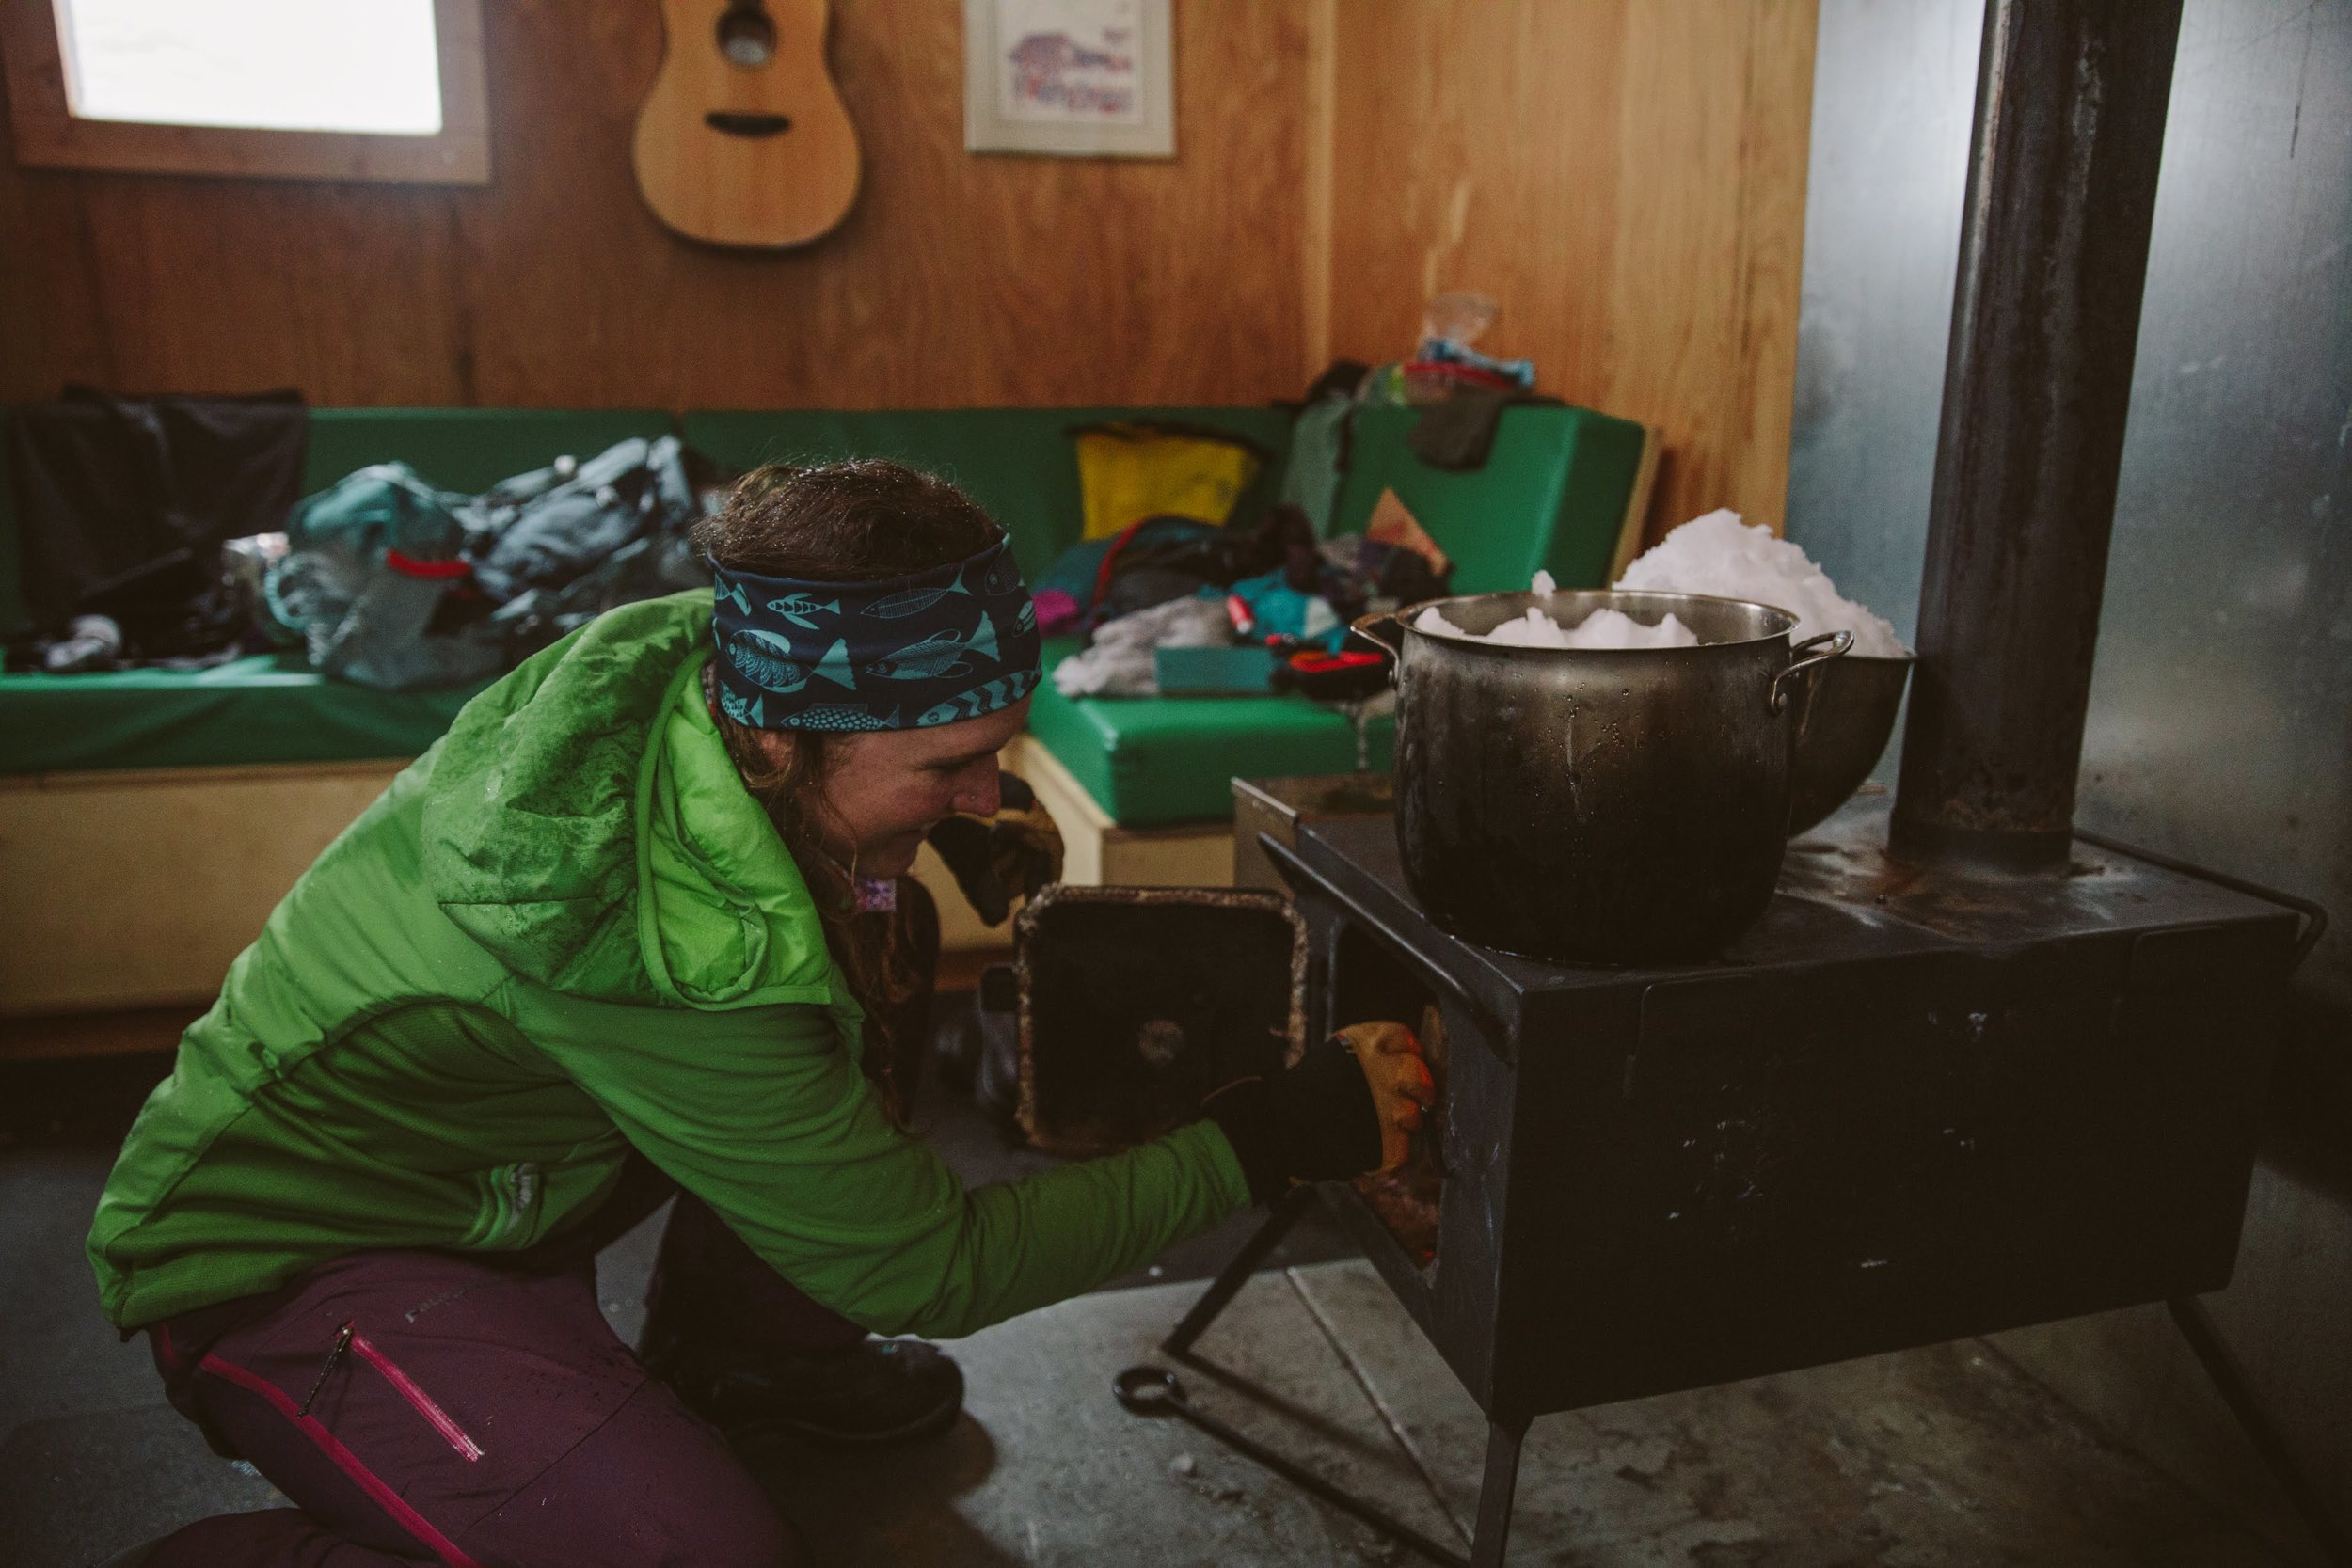 Elise adds wood to the fire so we can melt snow. Photo by Elena Pressprich (@findmeoutside)